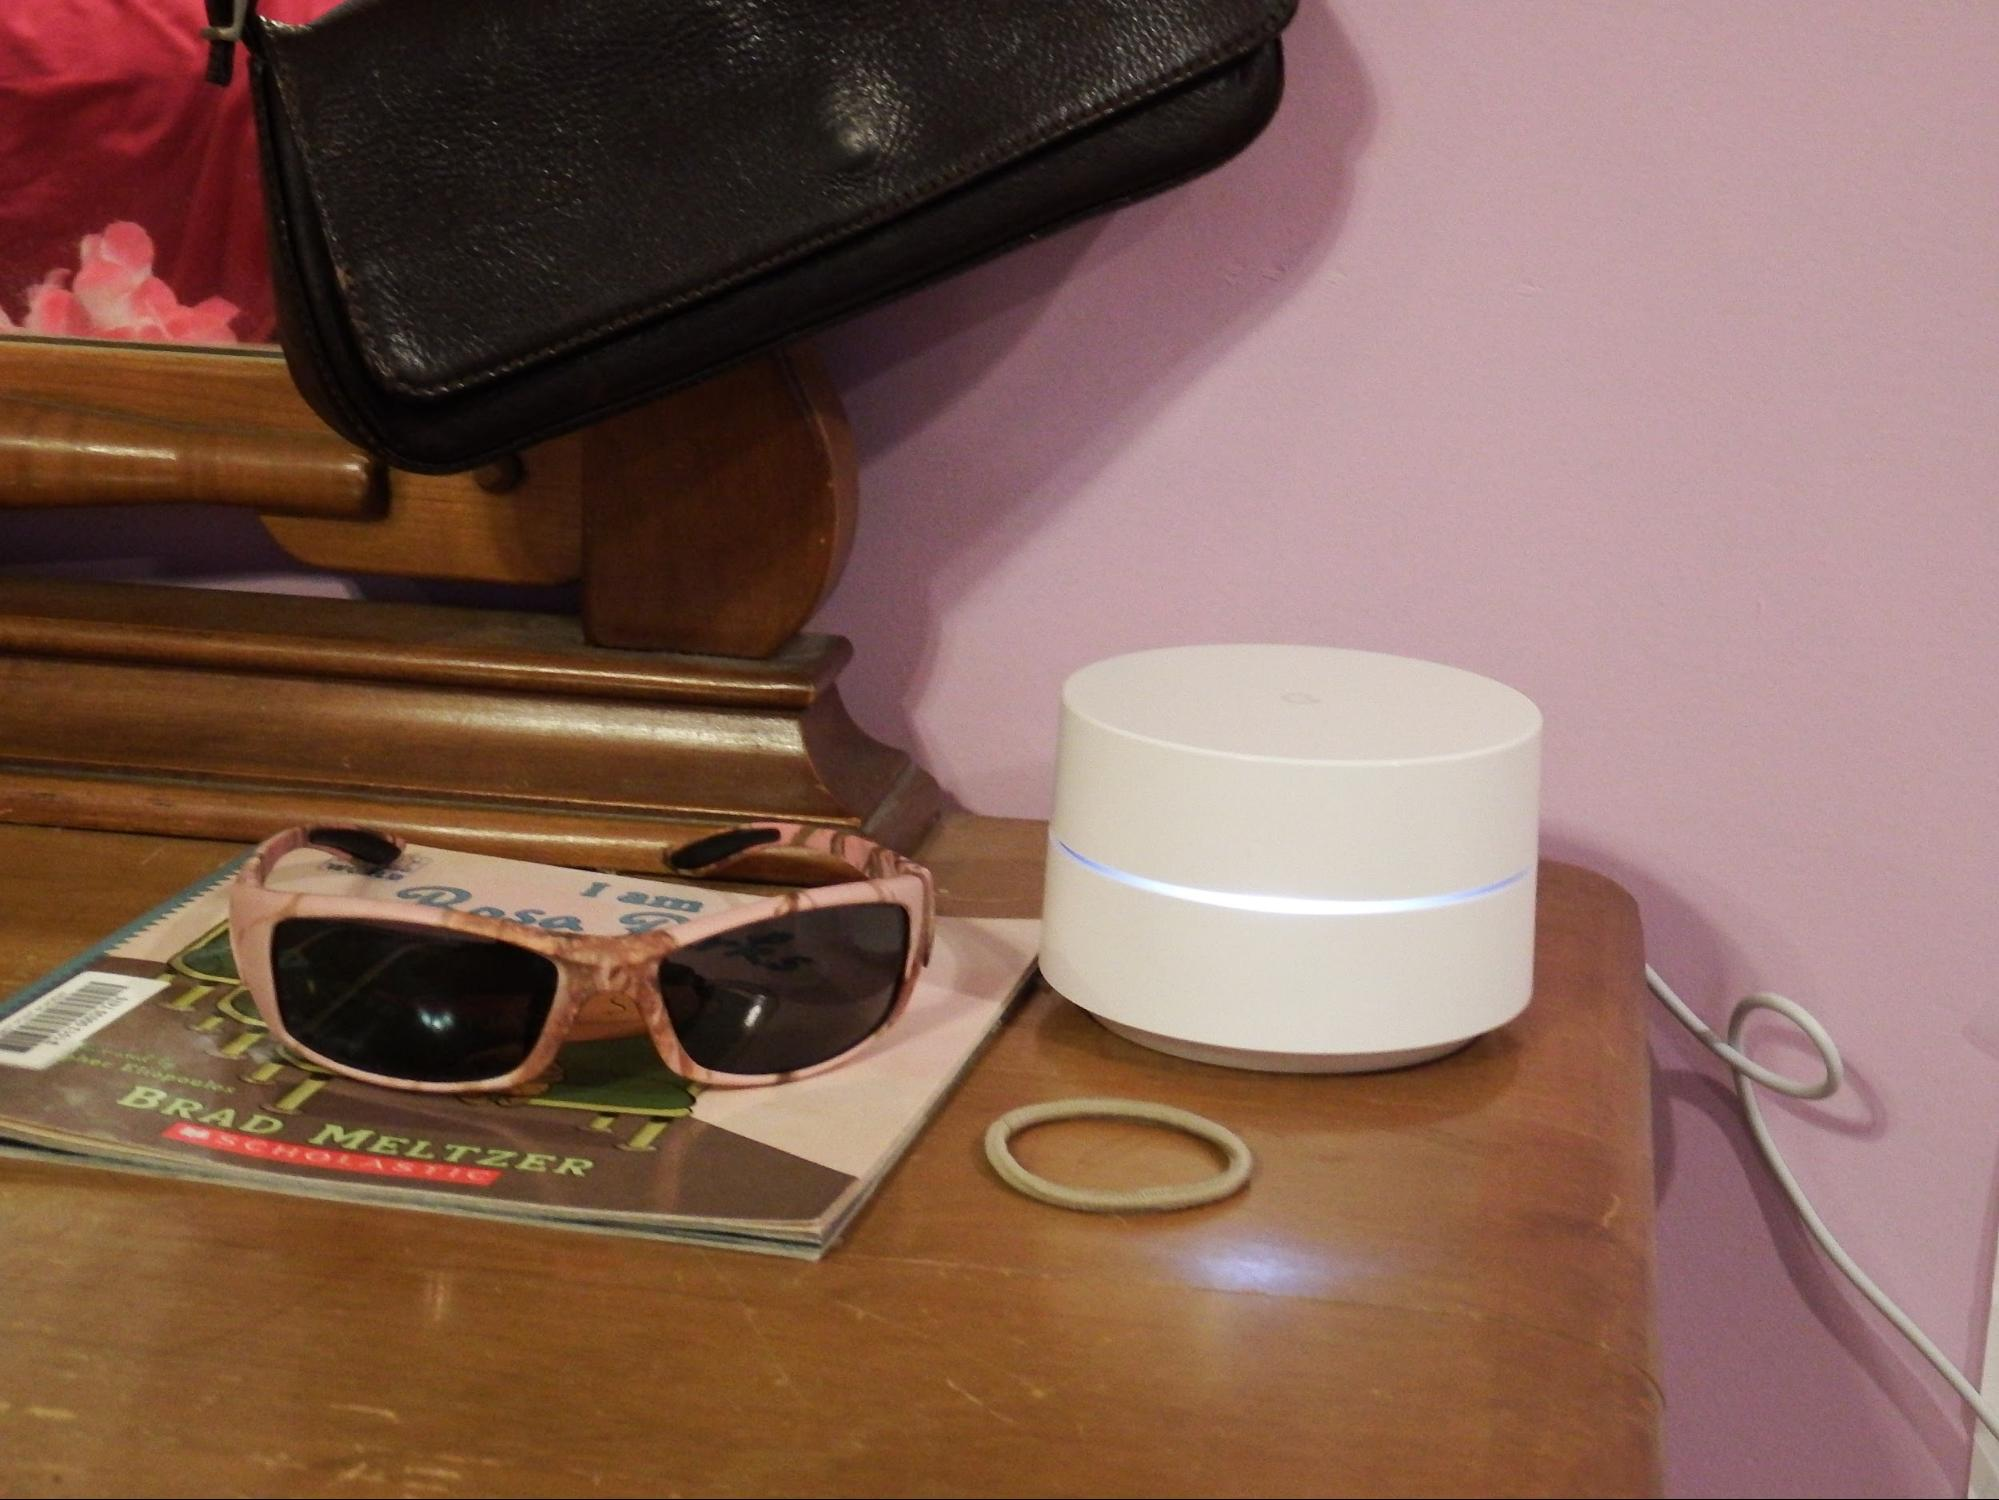 Why does that makeup jar have a glowing light and a power cord? … Oh. Hello, Google Wifi.